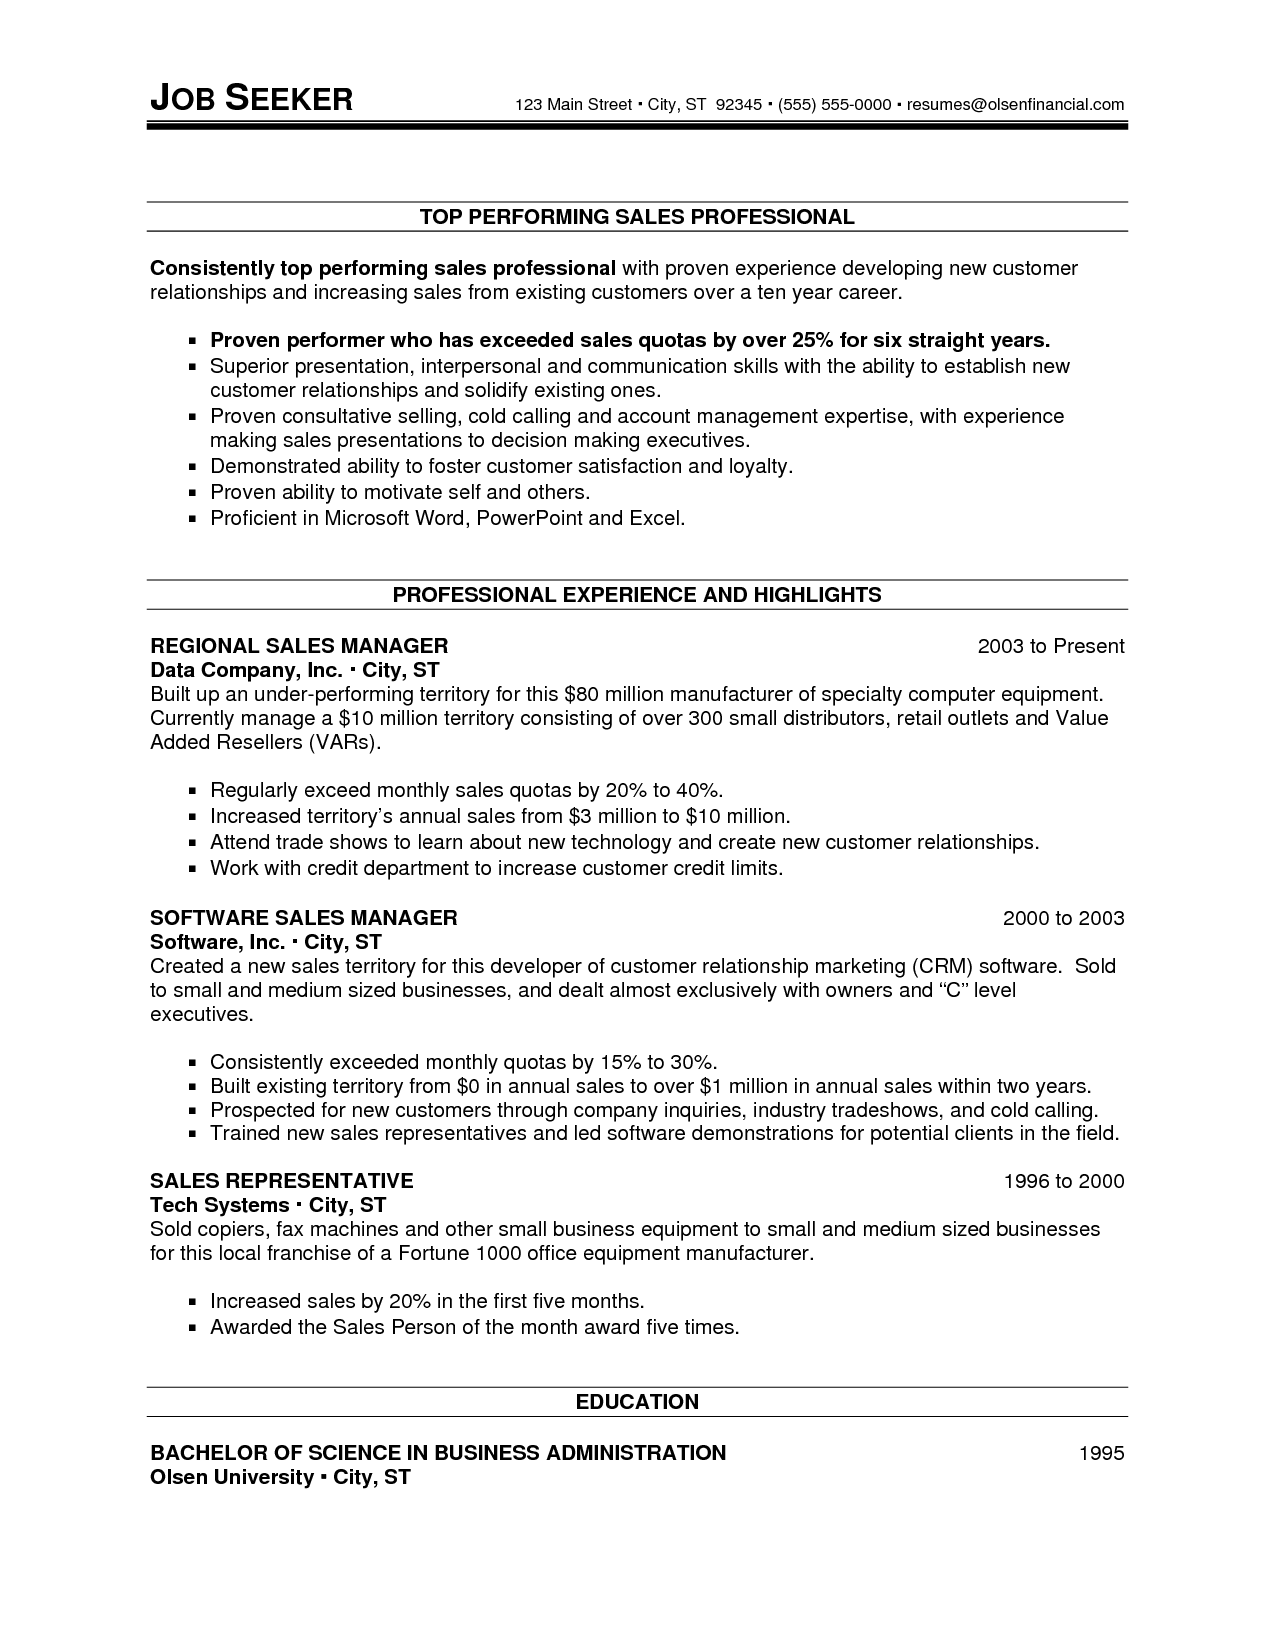 Resume Experience Example Copier Sales Resume Examples  Httpwwwresumecareercopier